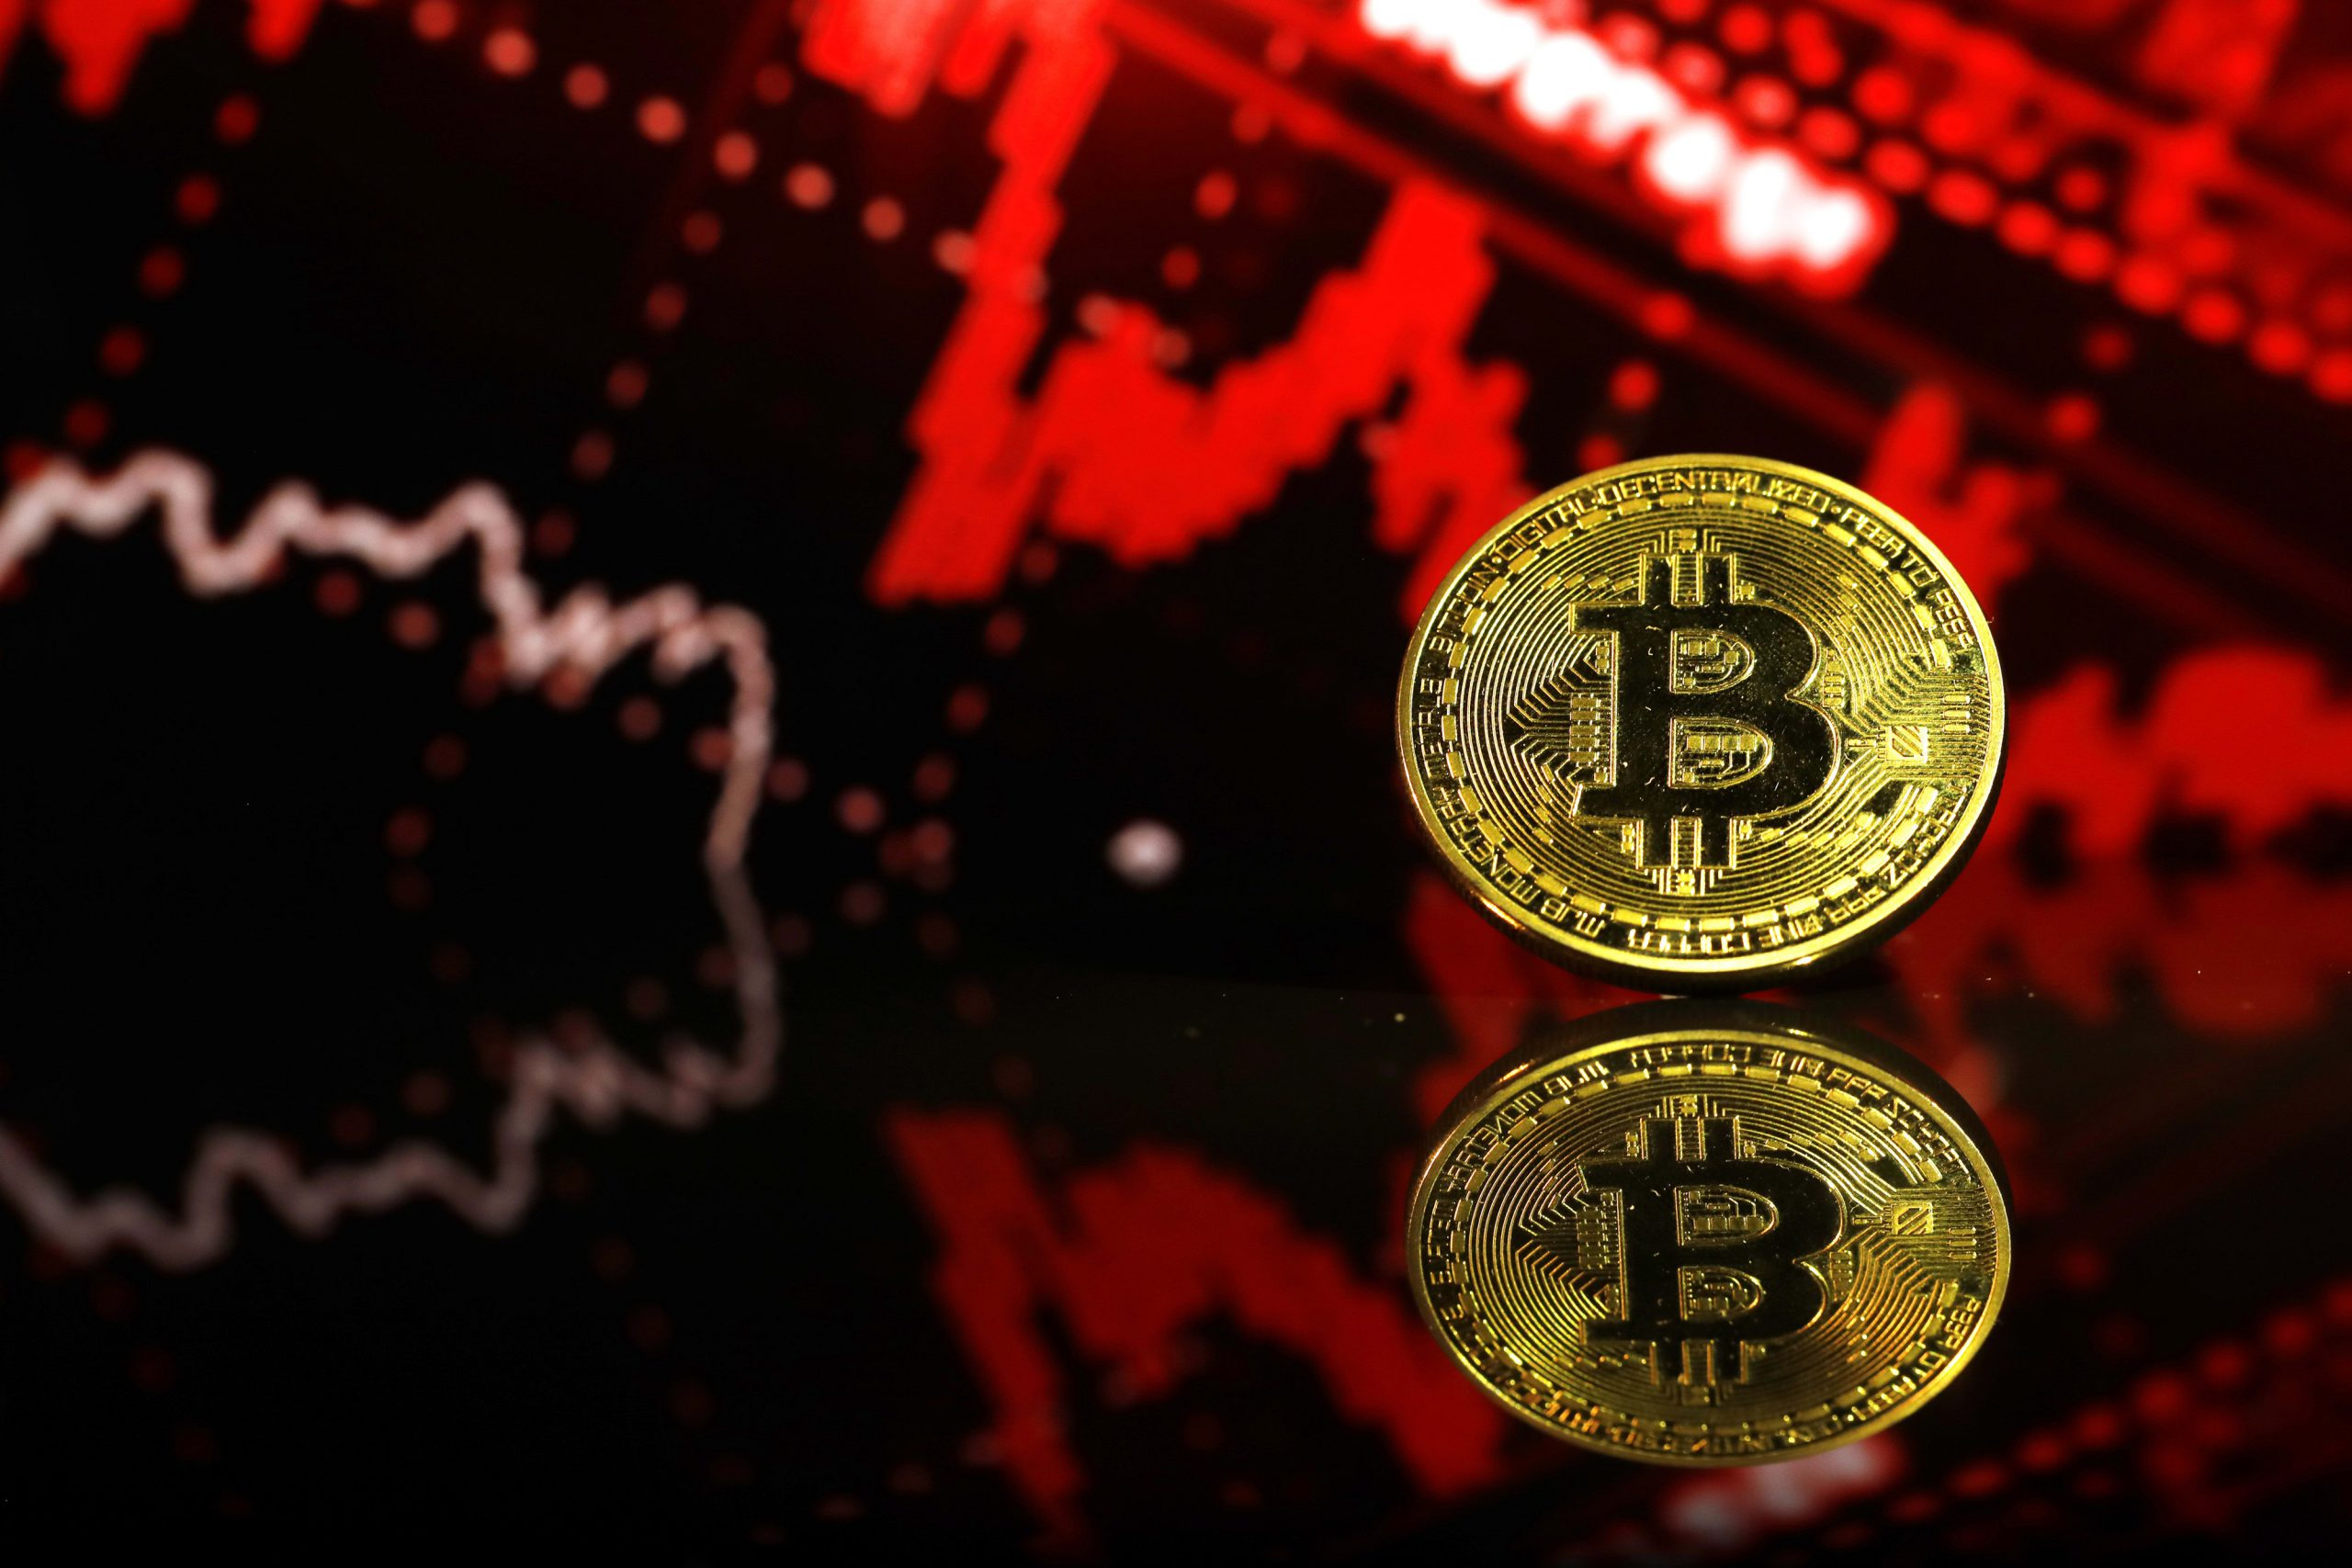 Cryptocurrencies see $93.5 billion wiped off value in 24 hours as bitcoin plunges 48%